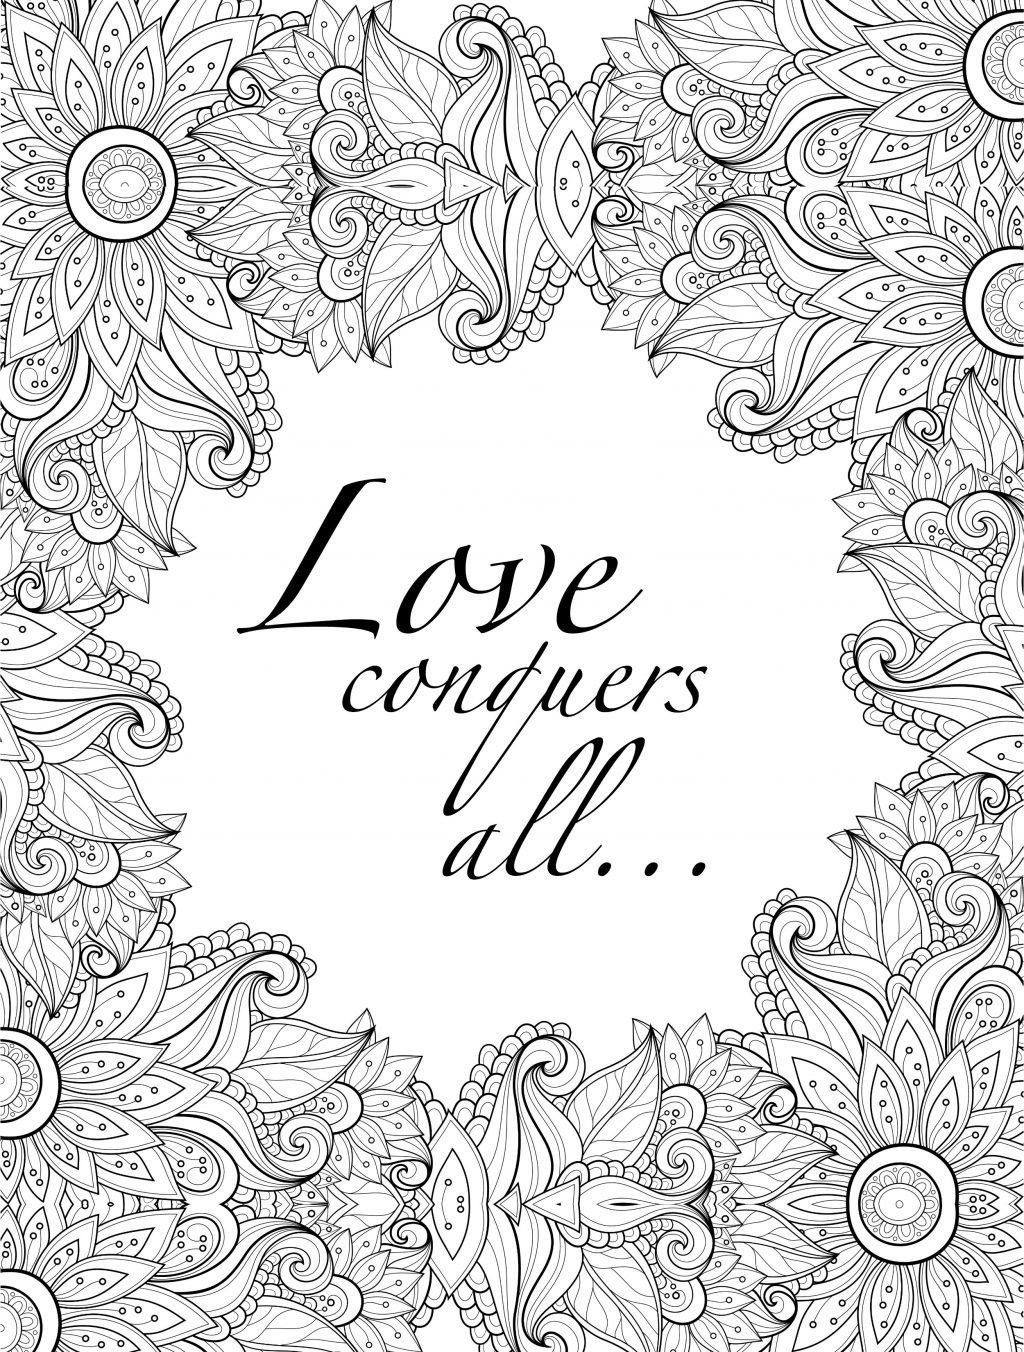 Free Printable Quote Coloring Pages For Adults Coloring Pages Staggering Freerintable Quotes Coloringages Image Albanysinsanity Com Valentine Coloring Pages Printable Valentines Coloring Pages Valentines Day Coloring Page